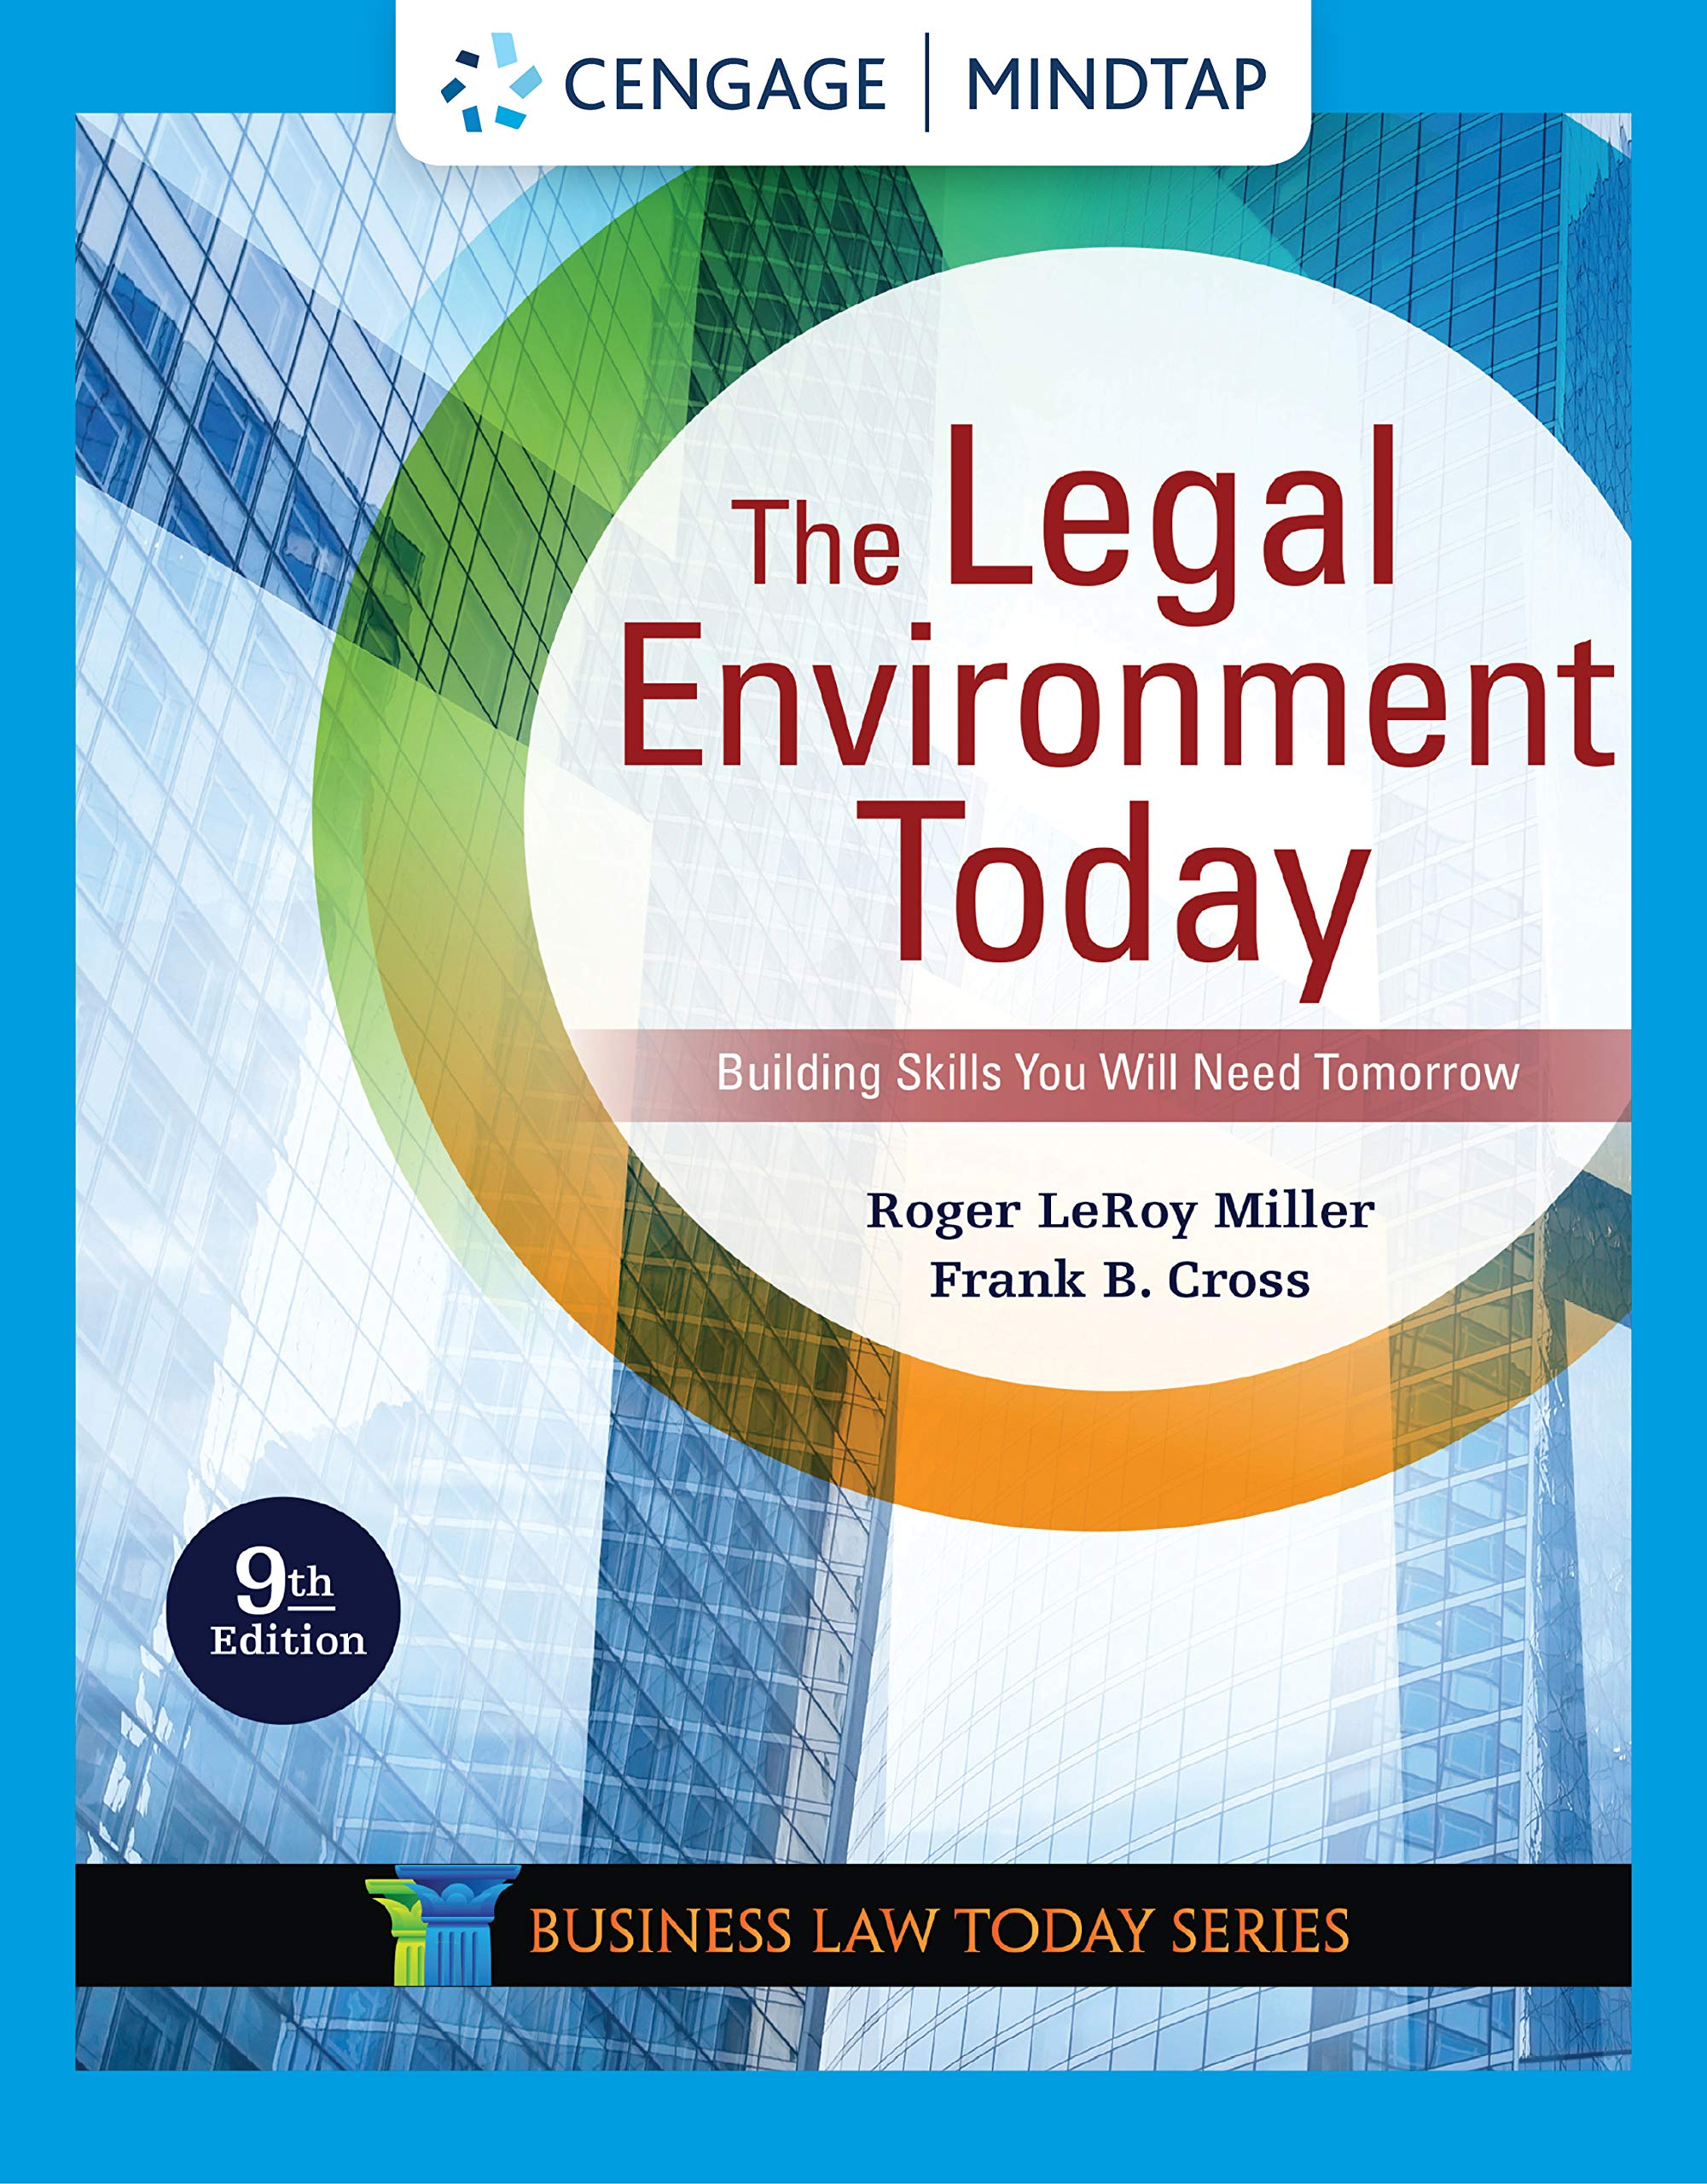 MindTap for Miller/Cross's The Legal Environment Today, 9th Edition [PC Online code] by Cengage Learning